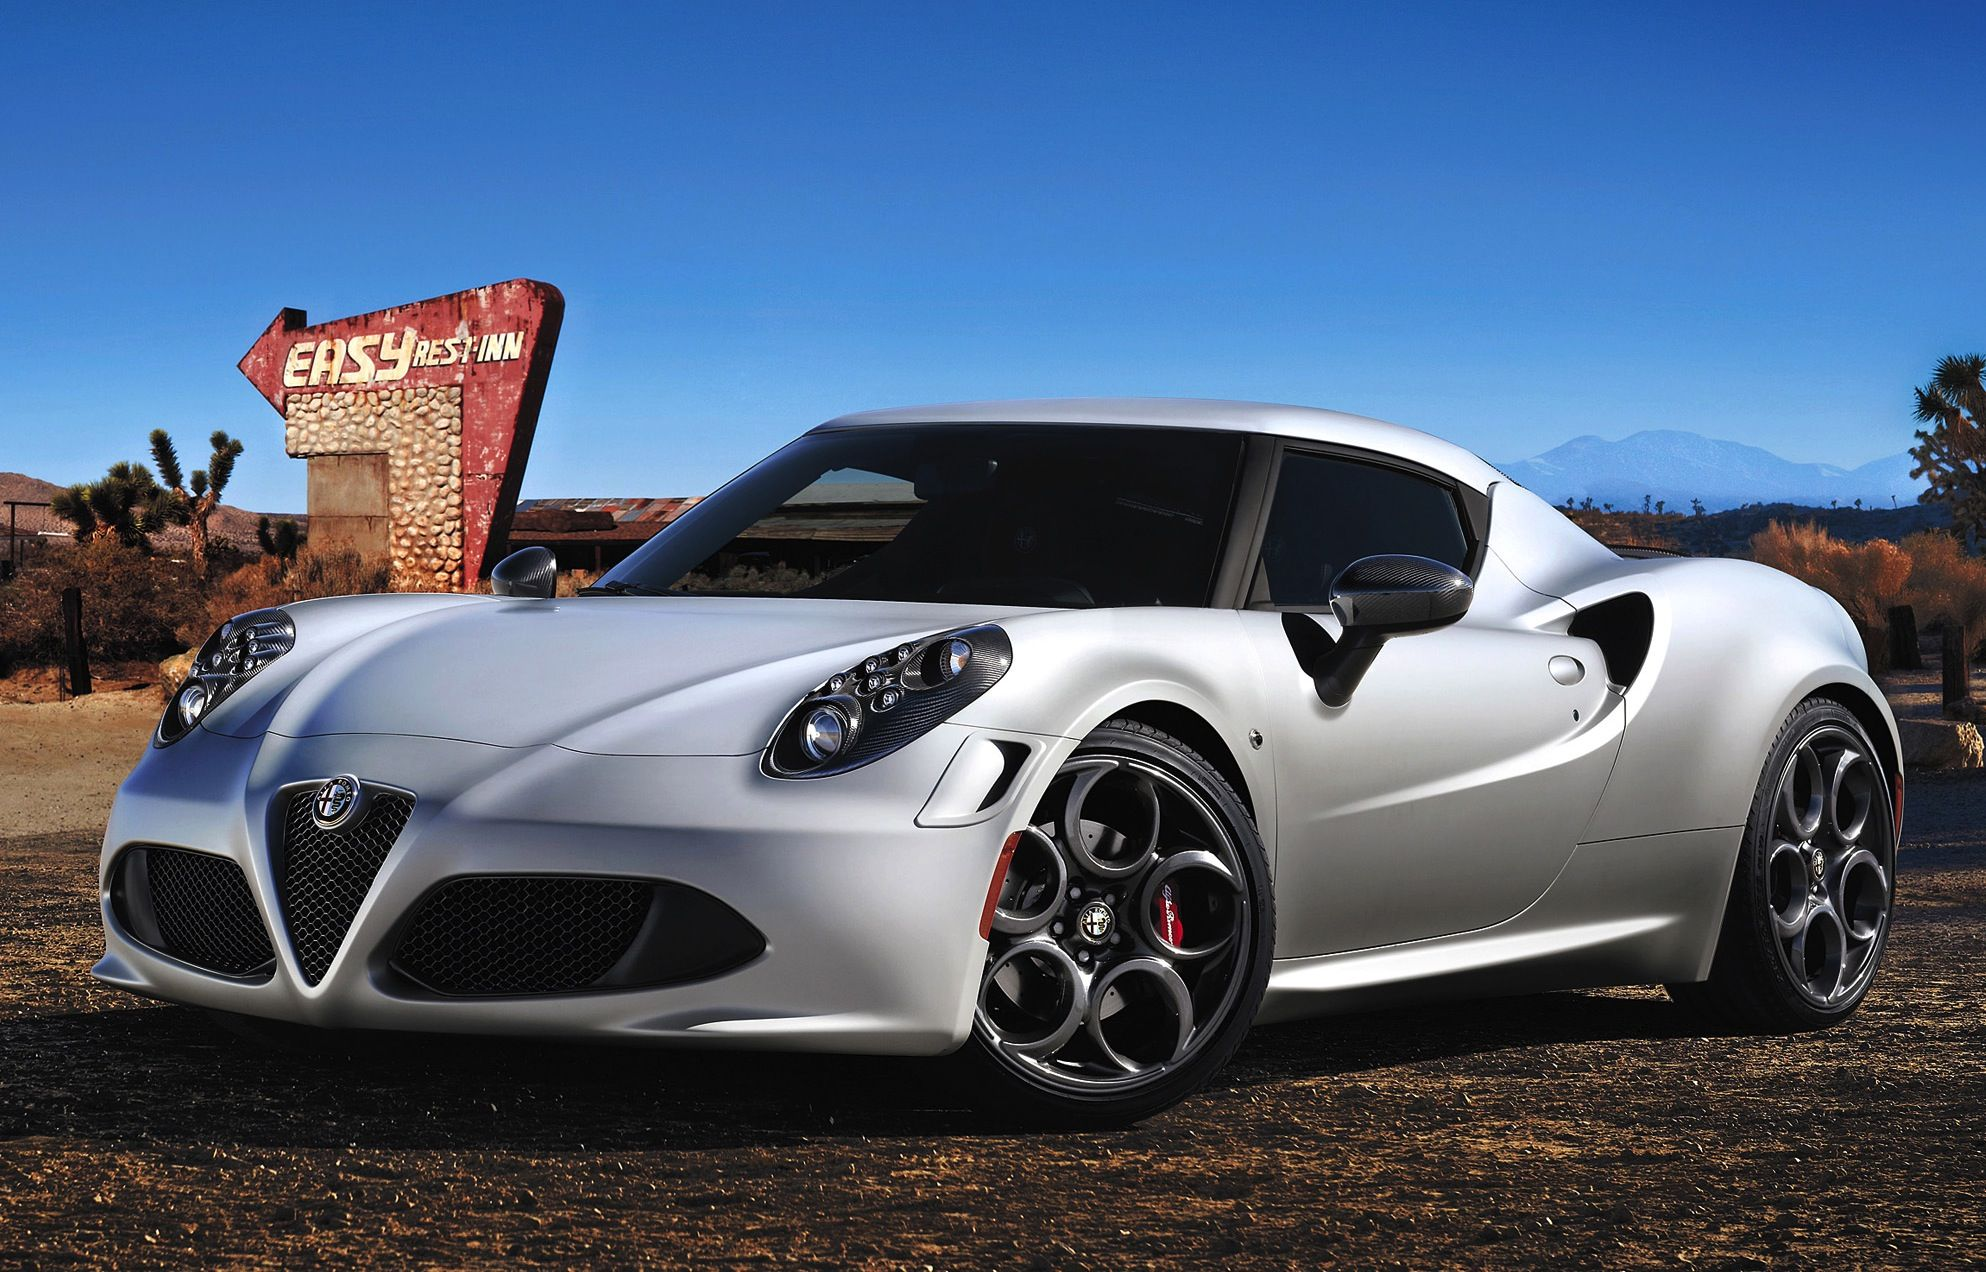 The 2013 alfa romeo launch edition that debuted at the geneva motor show in early march will see only have produced 400 are intended for europe